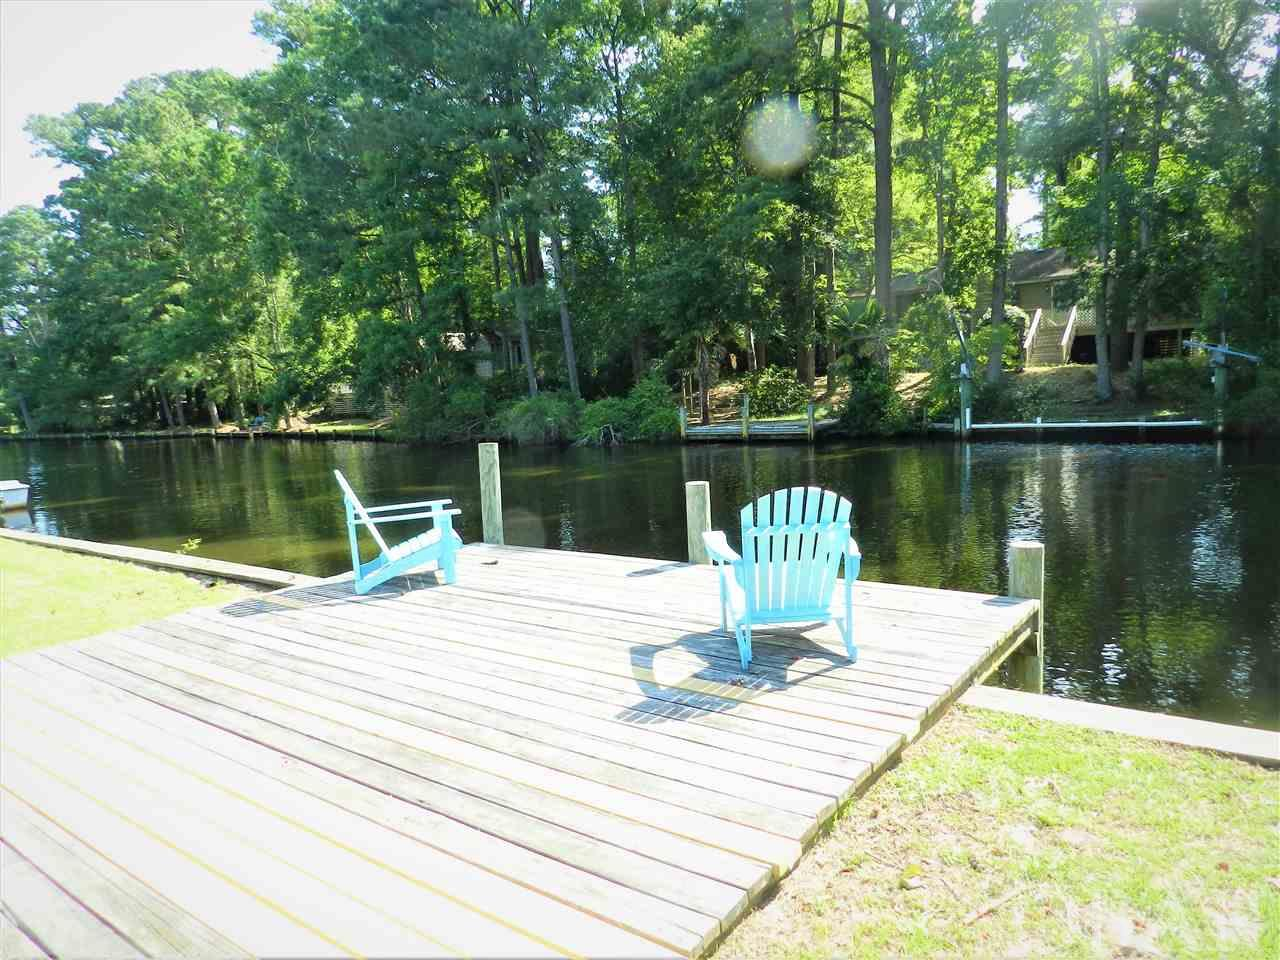 74 Duck Woods Drive, Southern Shores, NC 27949, 5 Bedrooms Bedrooms, ,2 BathroomsBathrooms,Residential,For sale,Duck Woods Drive,105575